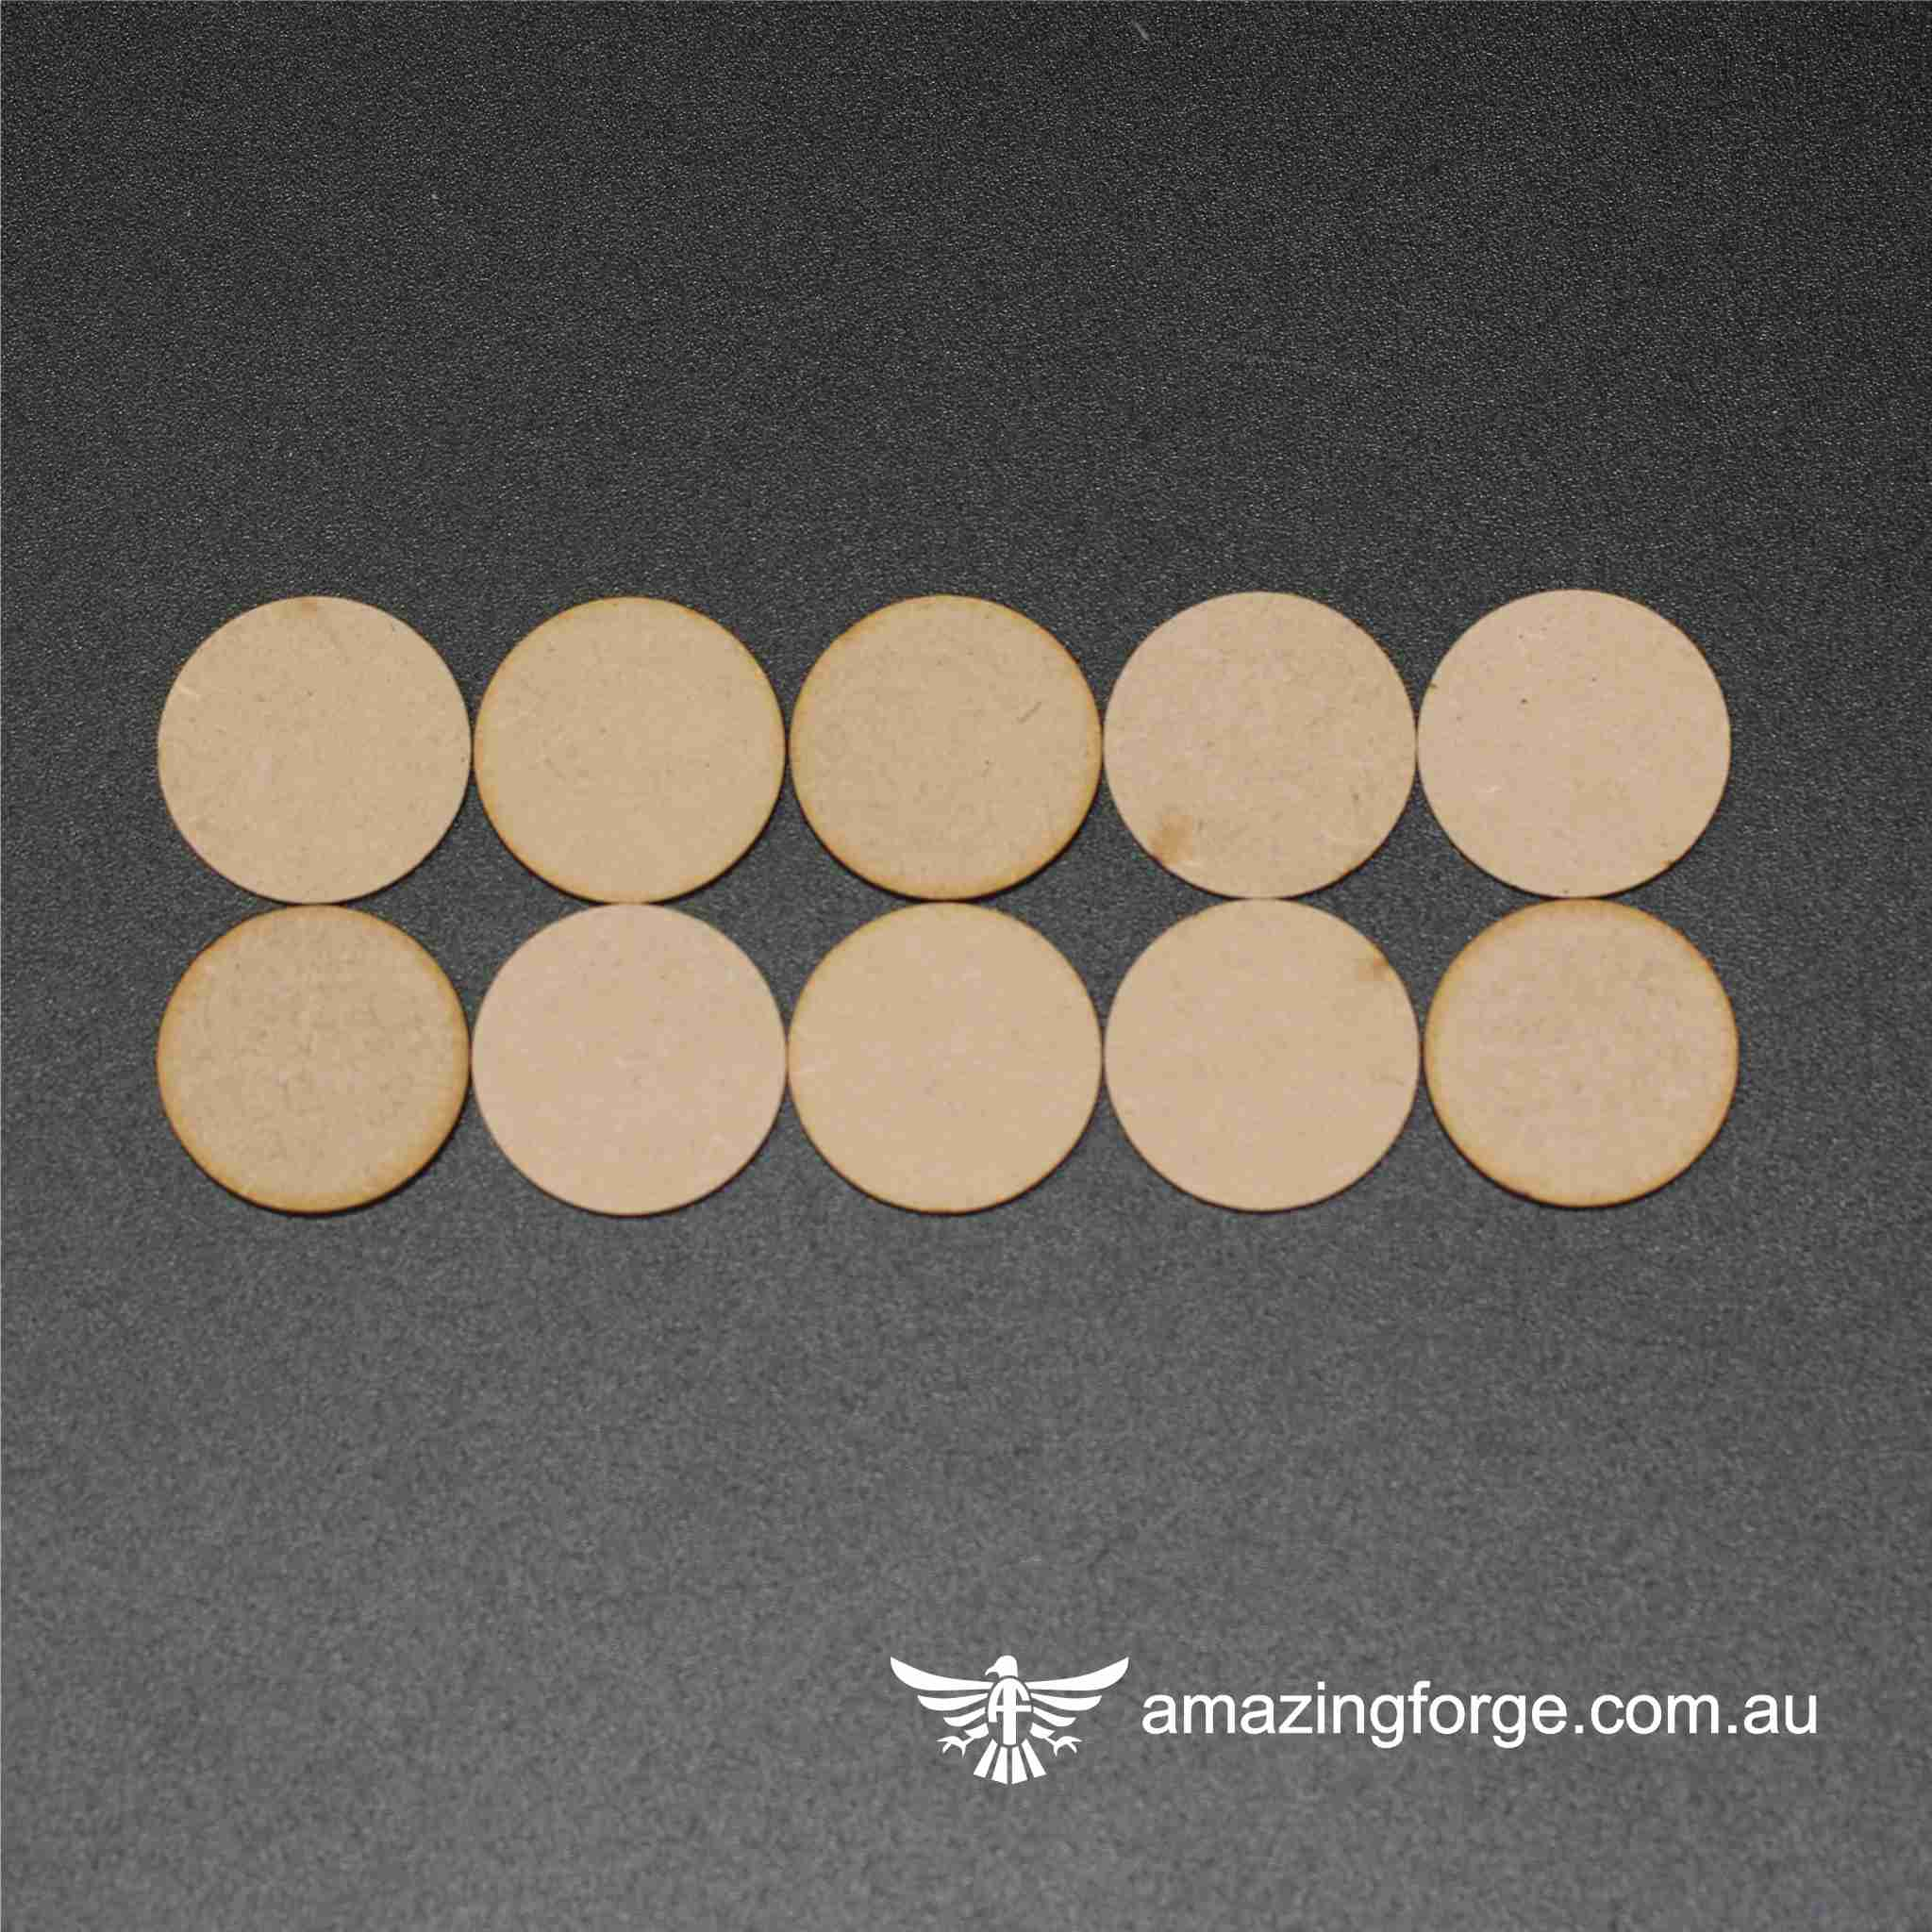 55mm Round Bases (qty 10)